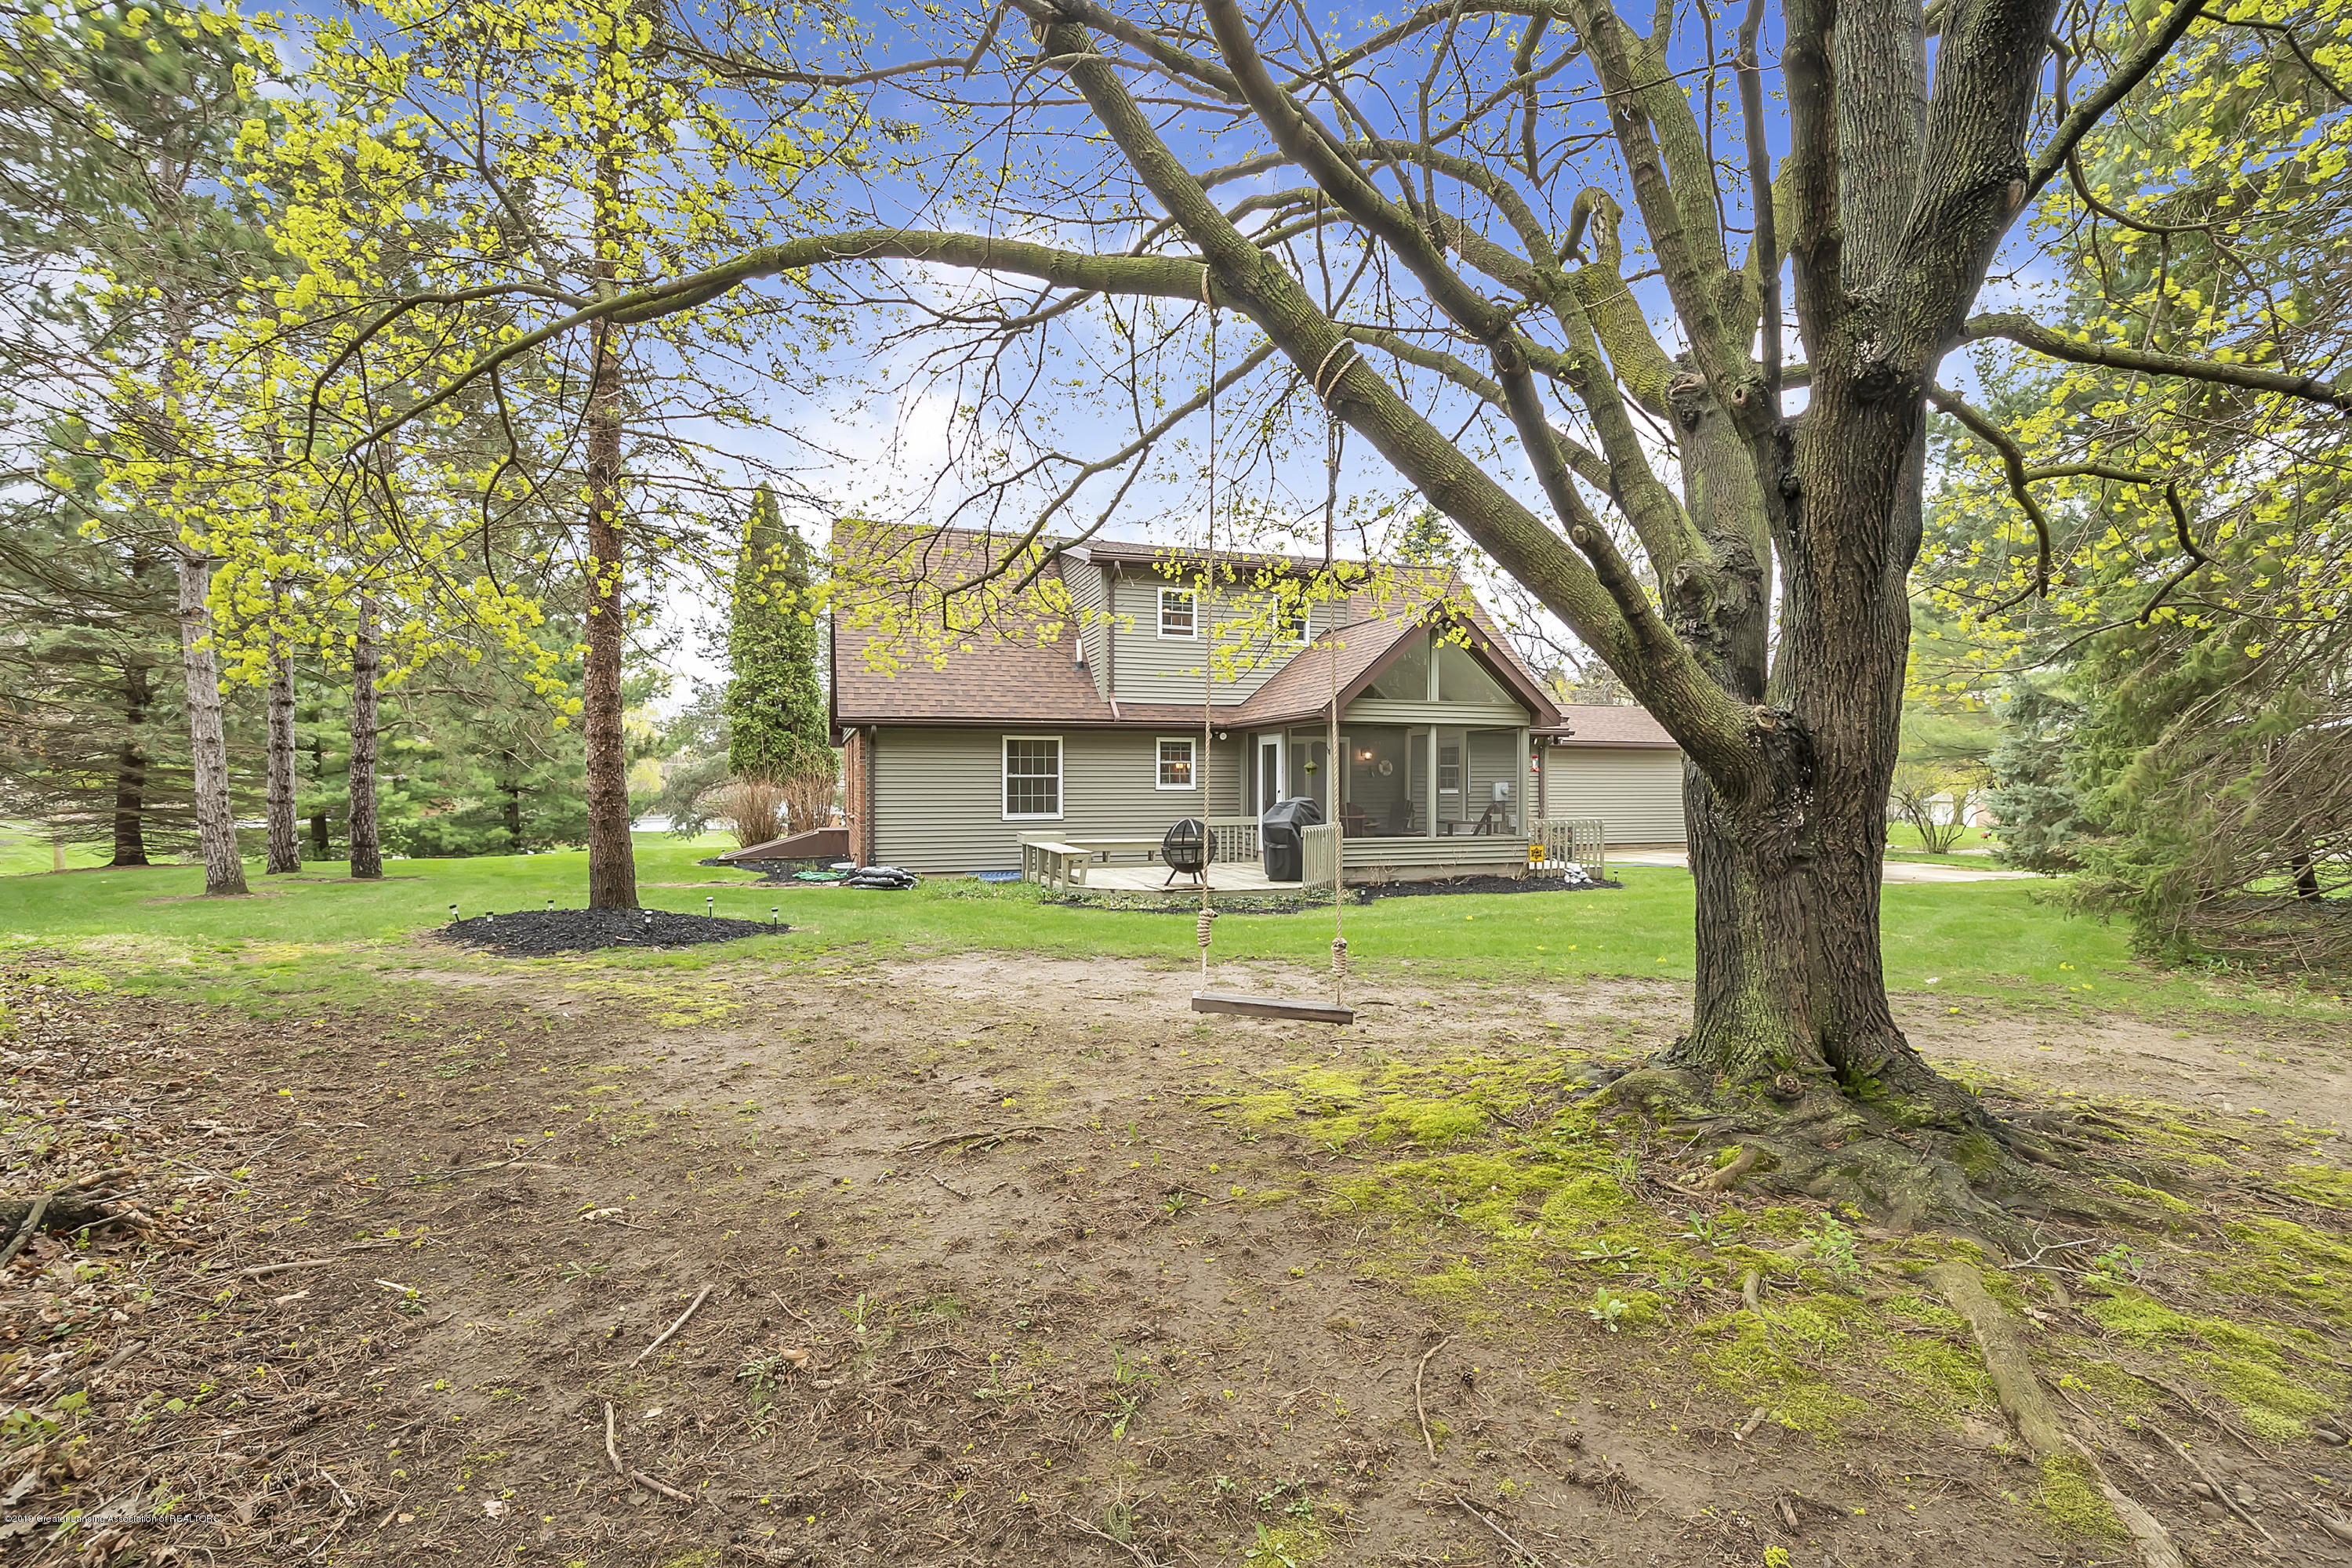 5075 Lake Dr - 5075-Lake-Dr-Owosso-windowstill-38 - 37